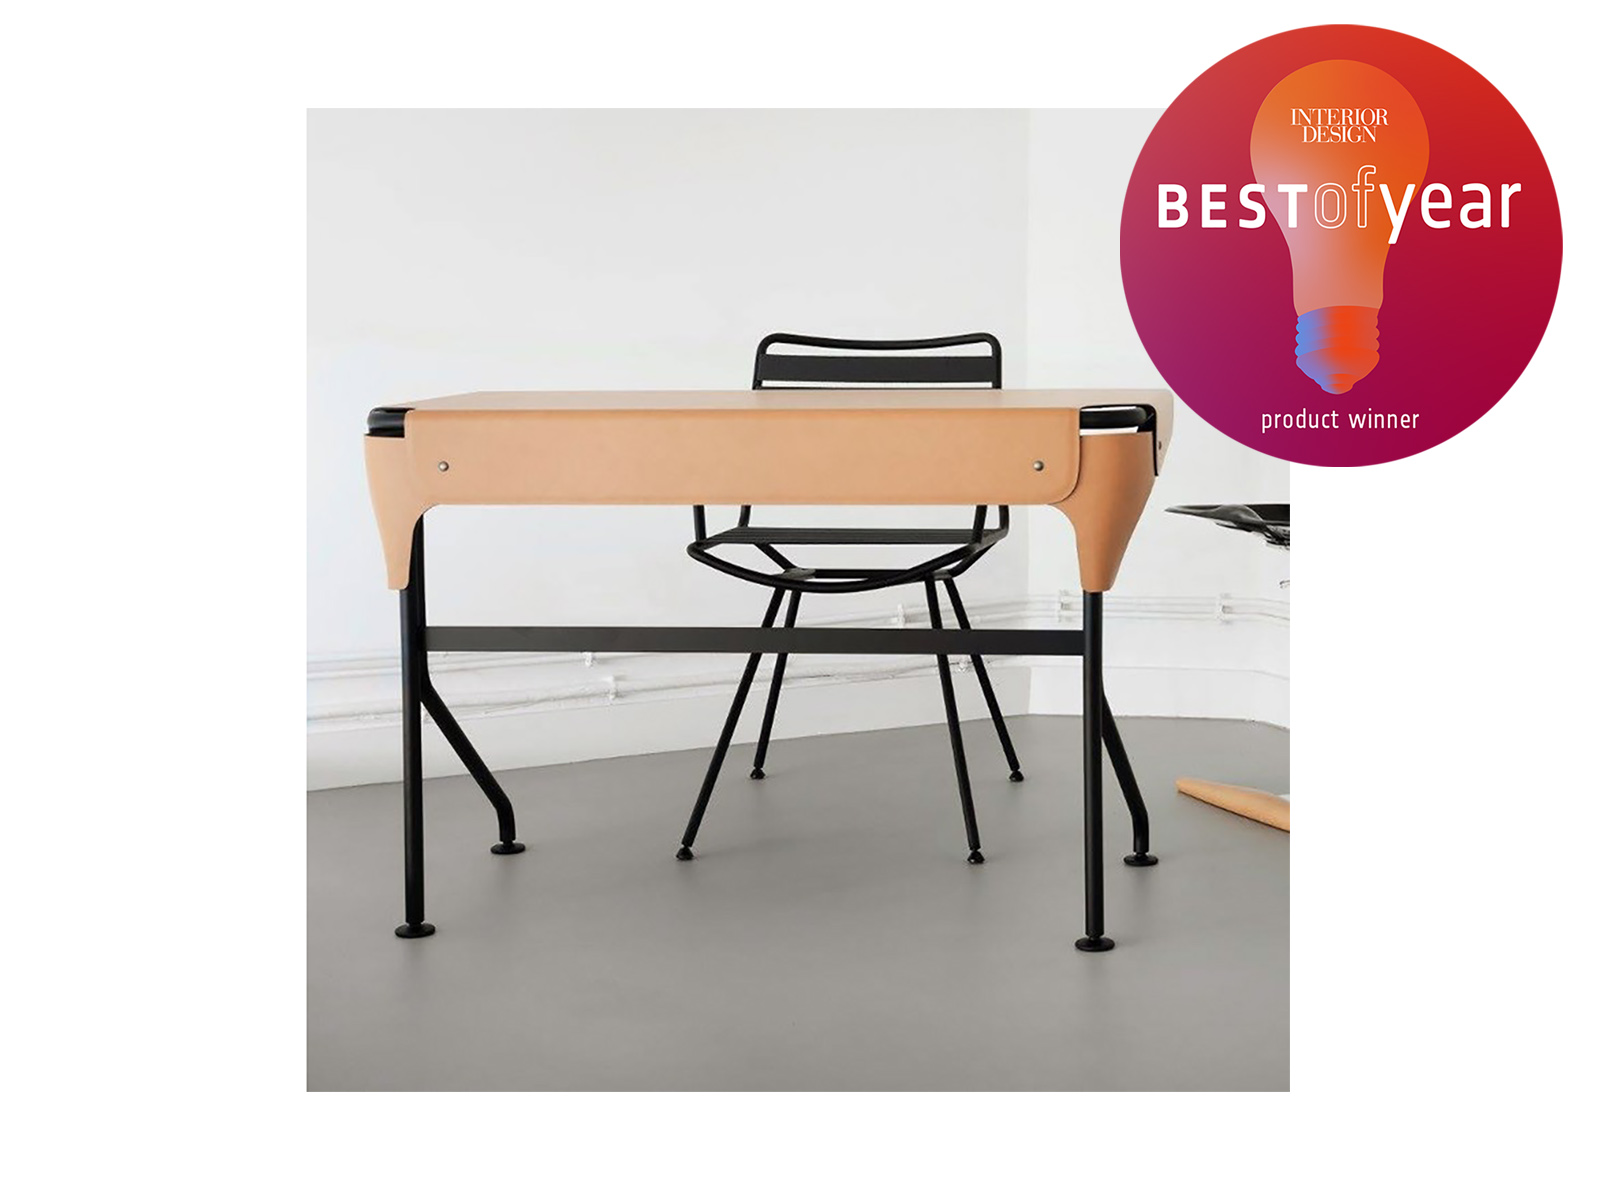 Best of the Year Award - Tucano Desk for Zanotta Awarded Best of Year Product Winner by Interior Design New York